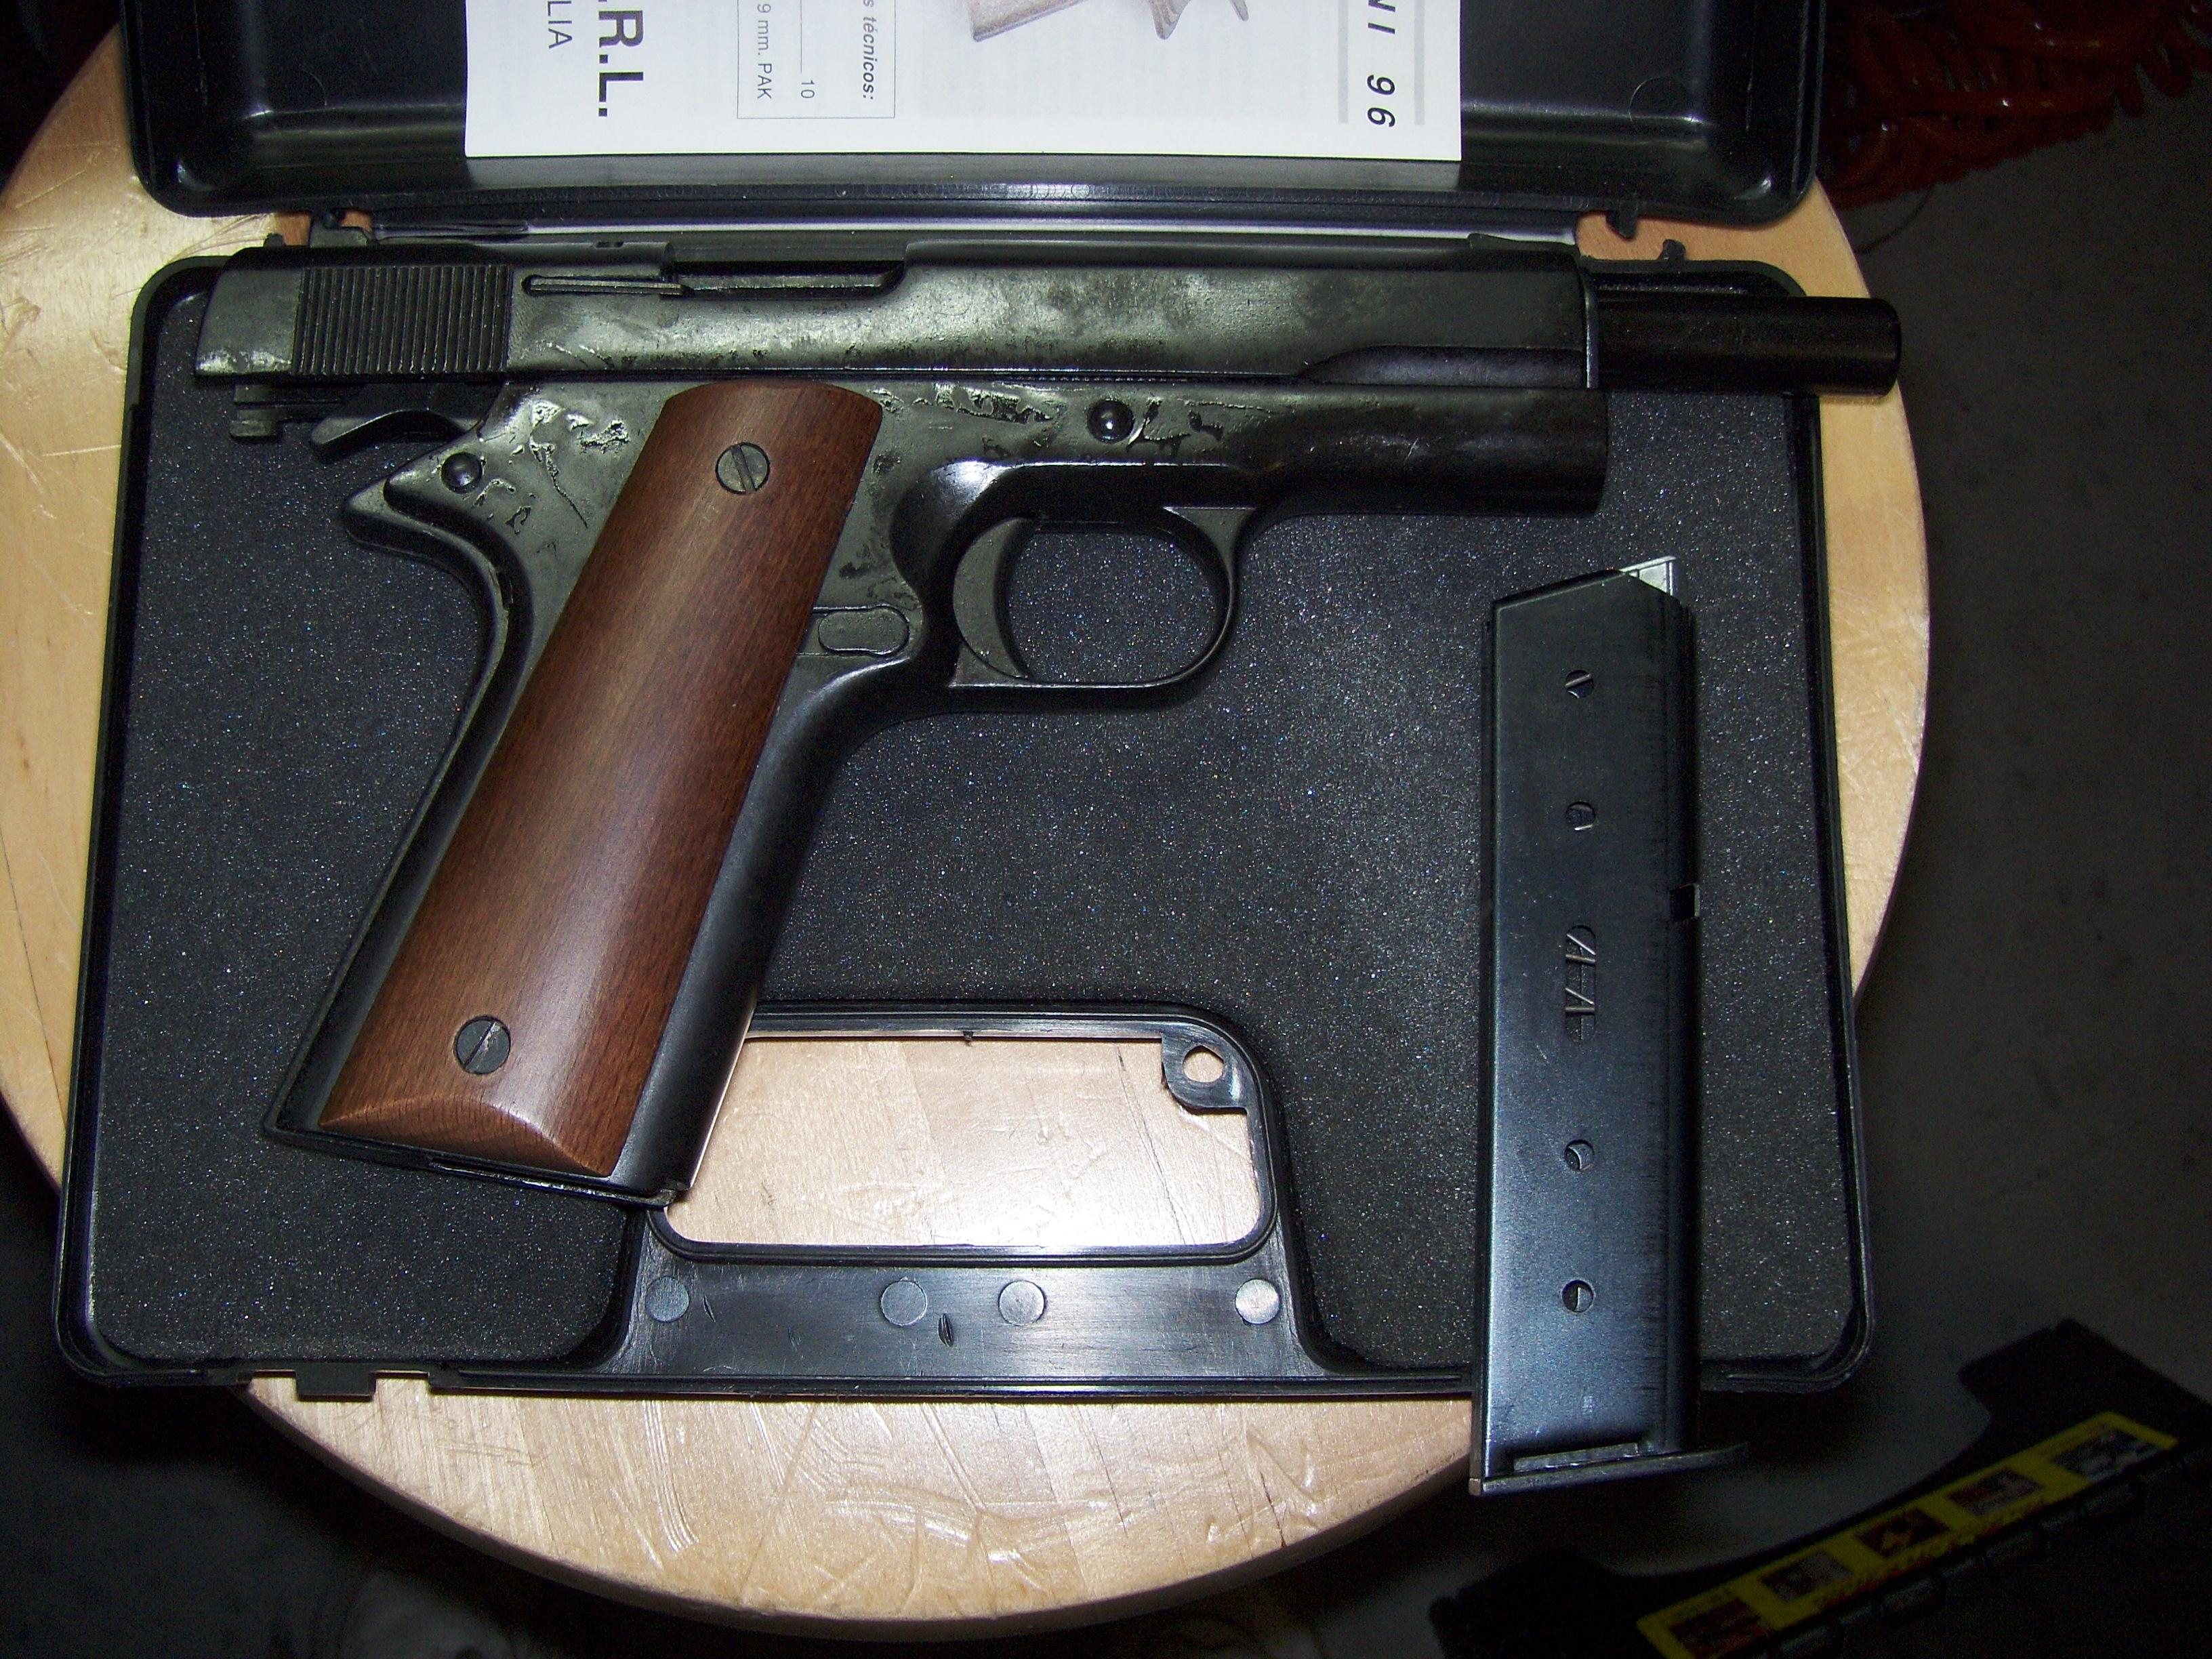 BRUNI 8MM BLANK AUTOMATIC PROP PISTOL - NEW IN BOX - USED IN MOVIE INDUSTRY- USES 8MM BLANKS  Guns > Pistols > B Misc Pistols